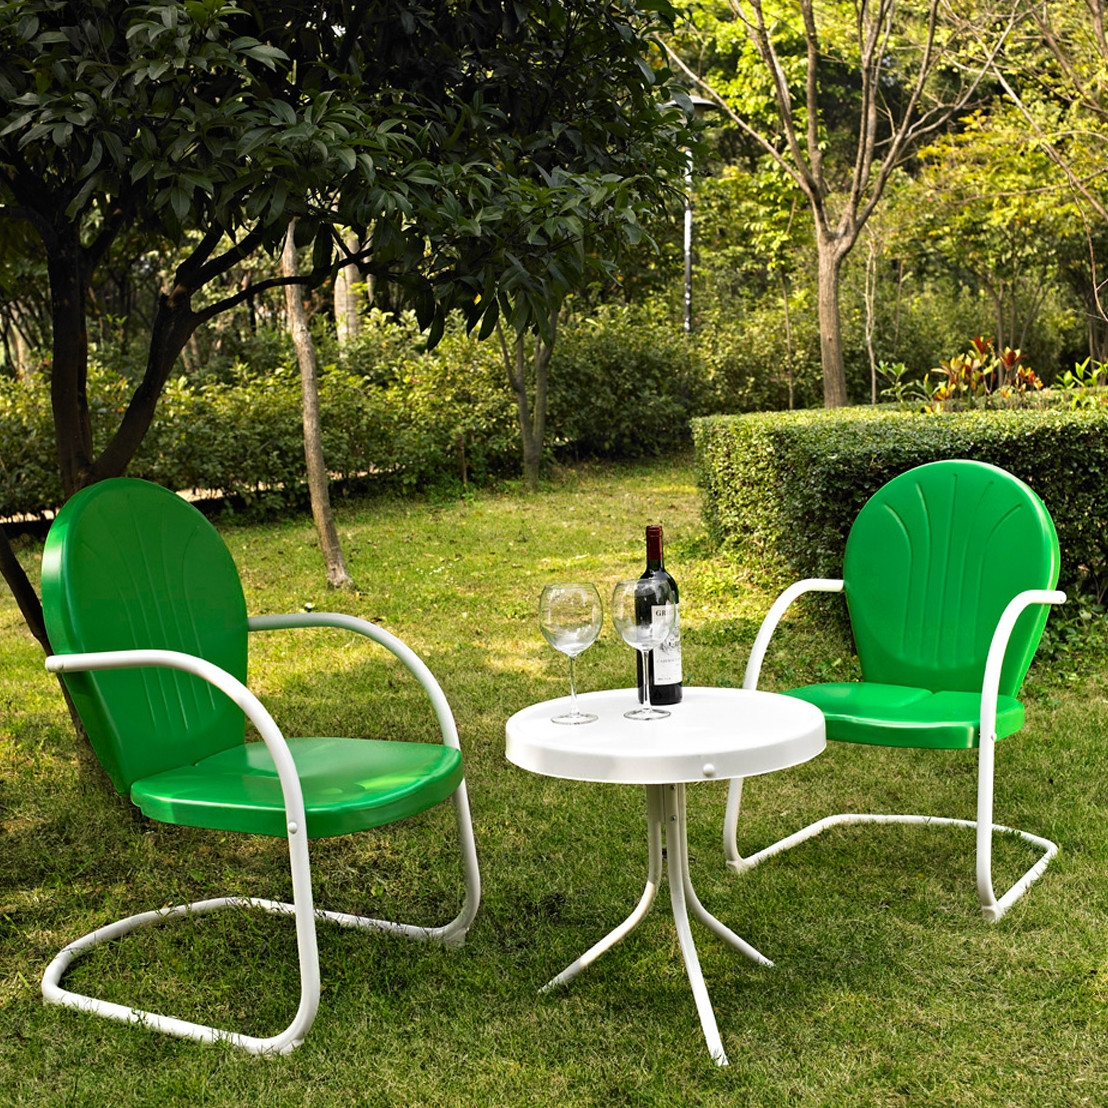 3-Piece Outdoor Patio Furniture Bistro Set in Green and White, C3PS1389 :  Relax outside for hours on our nostalgically inspired 3-Piece Outdoor Patio Furniture Bistro Set in Green and White. Kick back while you reminisce in this seating set, designed to withstand the hottest of summer days and other harsh conditions. Use a soft clean cloth that will not scratch the surface when dusting. Use of furniture polish is not necessary. Should you choose to use a furniture polish, test in an inconspicuous area first. Use of solvents of any kind could damage your furniture's finish. To clean, simply use a soft cloth moistened with lukewarm water, then buff with a dry soft clean cloth.  UV resistant; Set includes 1 side table and 2 chairs; Sturdy steel construction; Non toxic powder coated finish; Weather Resistant Details: Weather resistant Water; Resistant Details: Water resistant and waterproof; Assembly Required: Yes; Product Warranty: 3 Month limited; Woven: Yes; Sling Included: No; Weight Capacity: 250lbs. Style: Contemporary; Pieces Included: 1 Side table, 2 Chairs; Country of Manufacture: China.